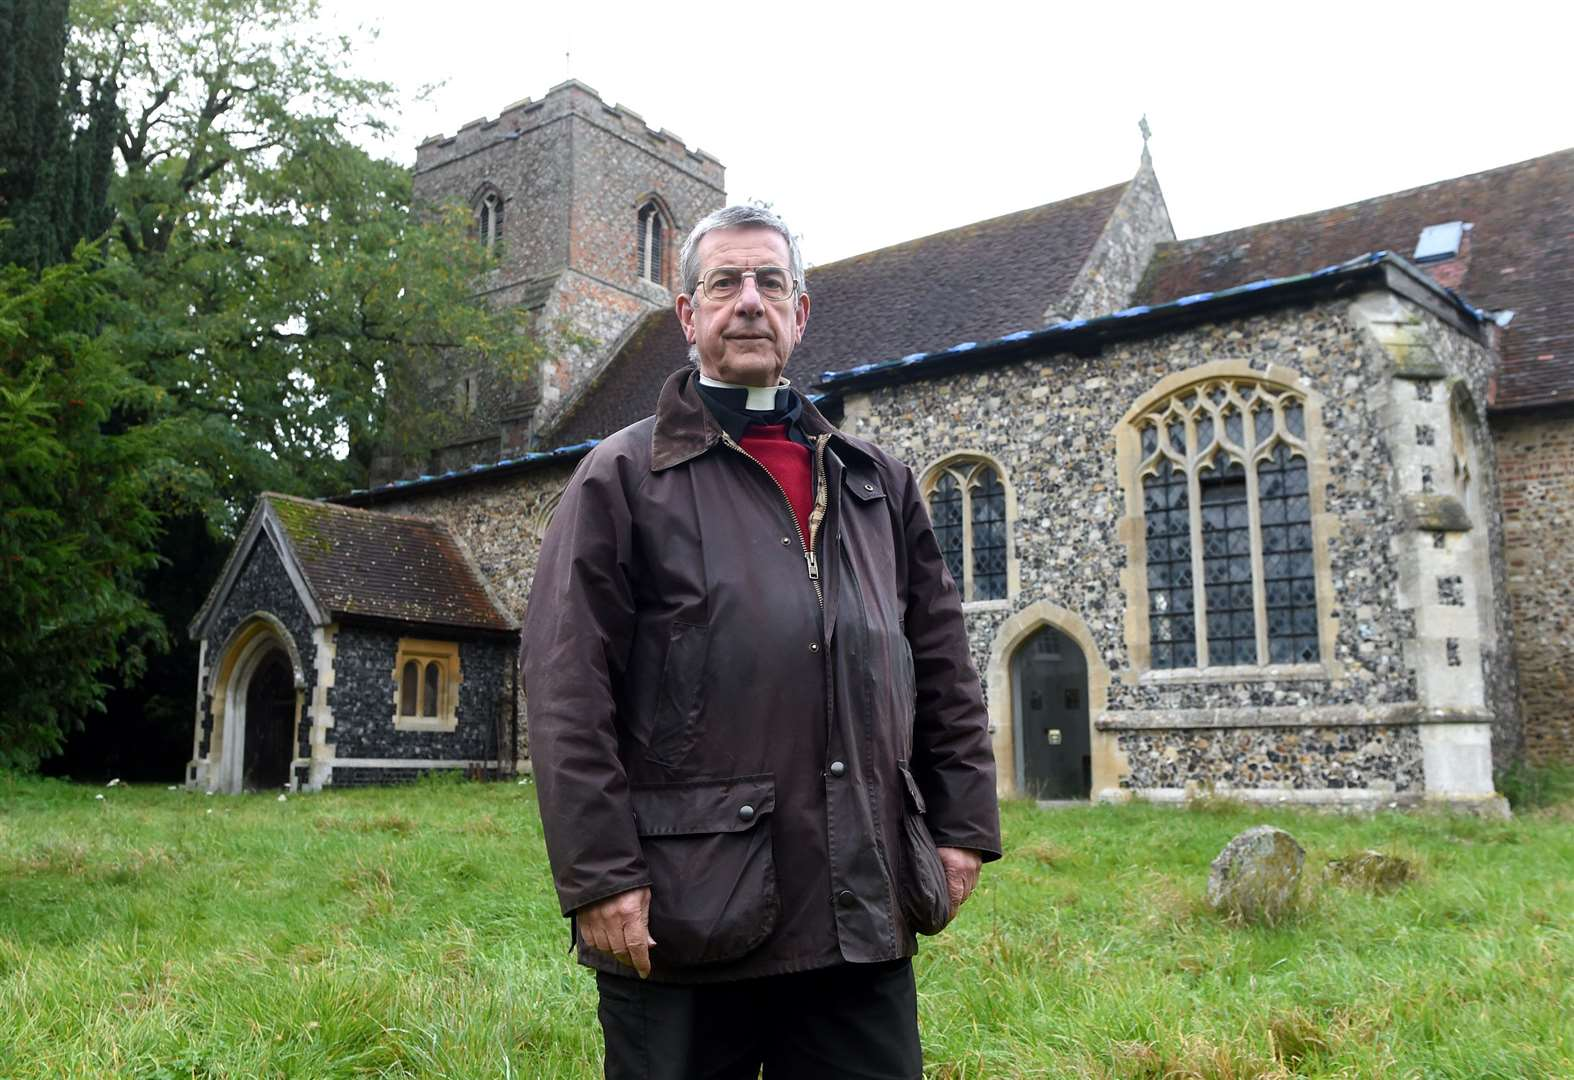 Hartest church faces repair bill up to £30,000 following lead theft